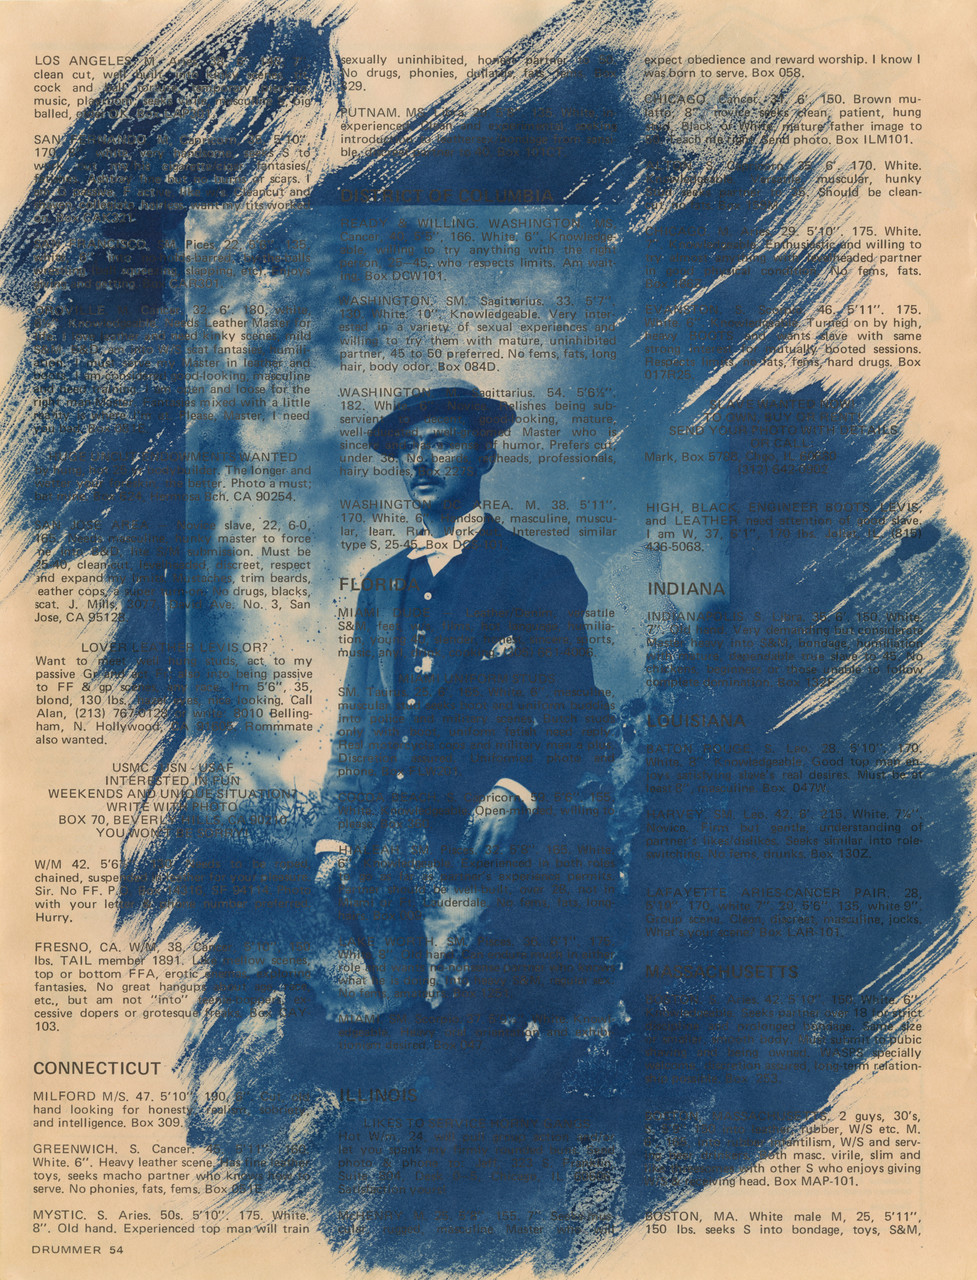 Blue Boy #5 (well-educated, well-groomed), 2014